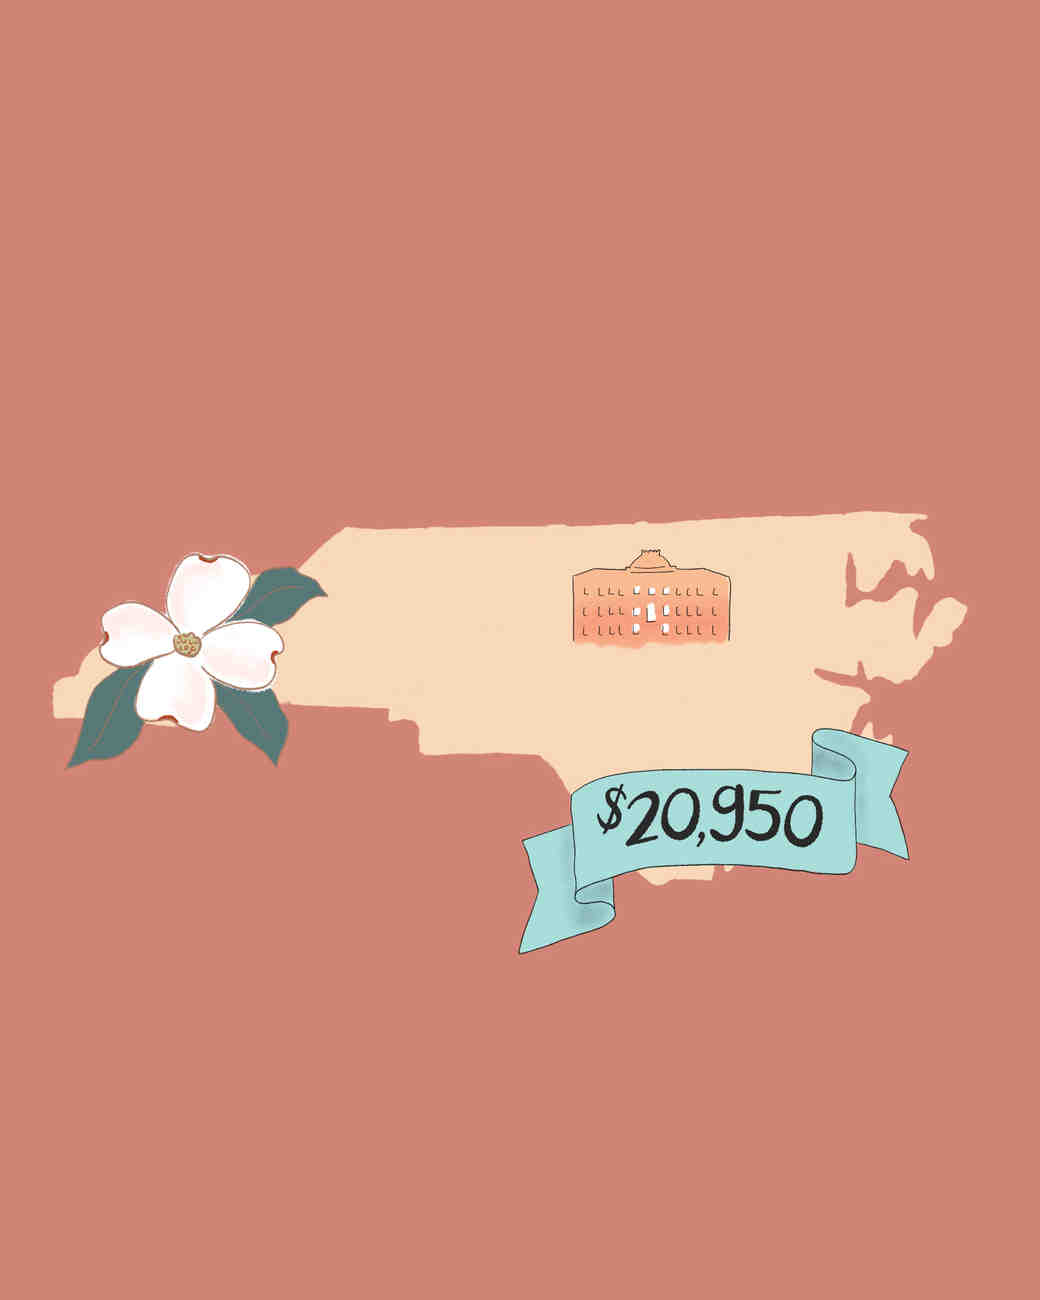 state wedding costs illustration north carolina